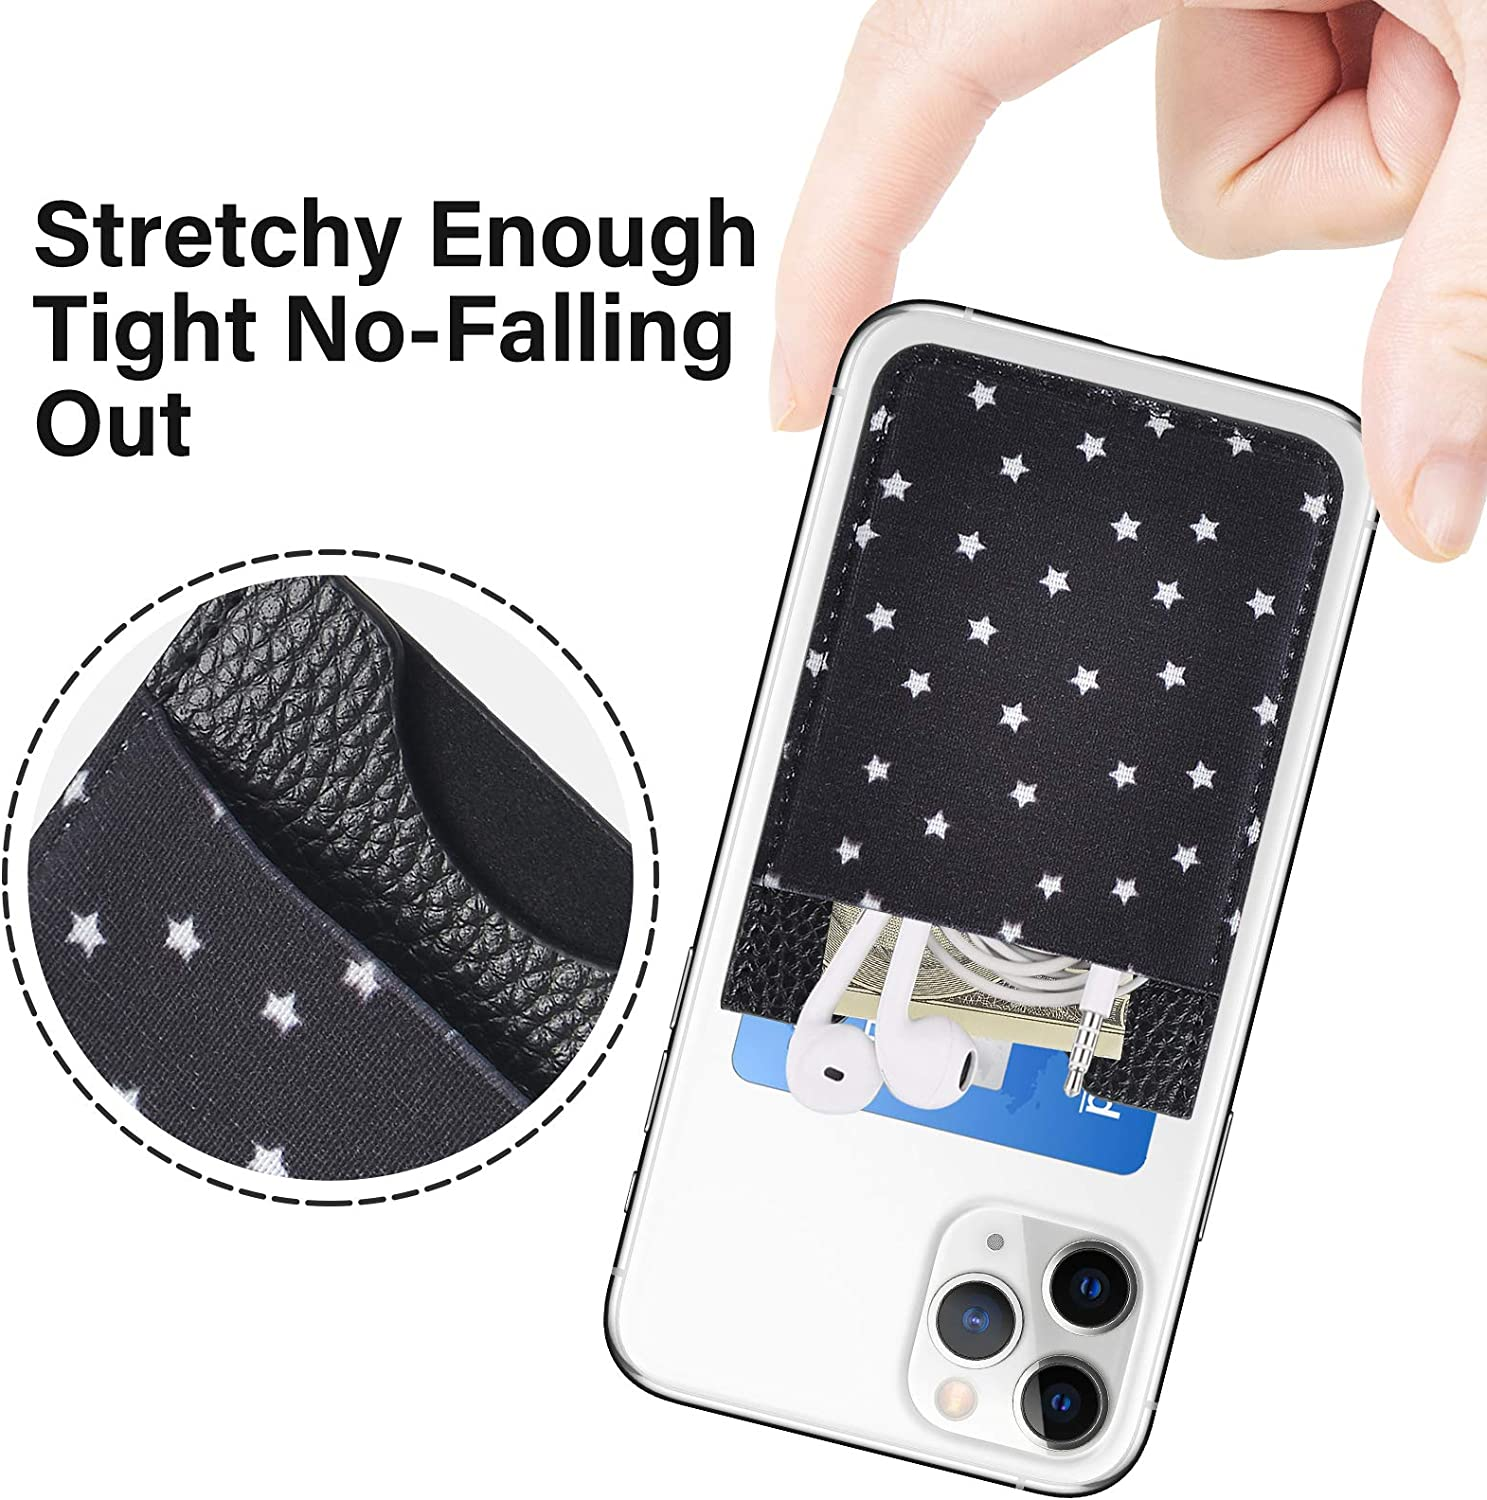 2 Pack PU Leather Stick on Wallet Elastic Credit Card Holder for Back of Phone Pocket Pouch for All Most Smartphones Black Stars SHANSHUI Cell Phone Wallet